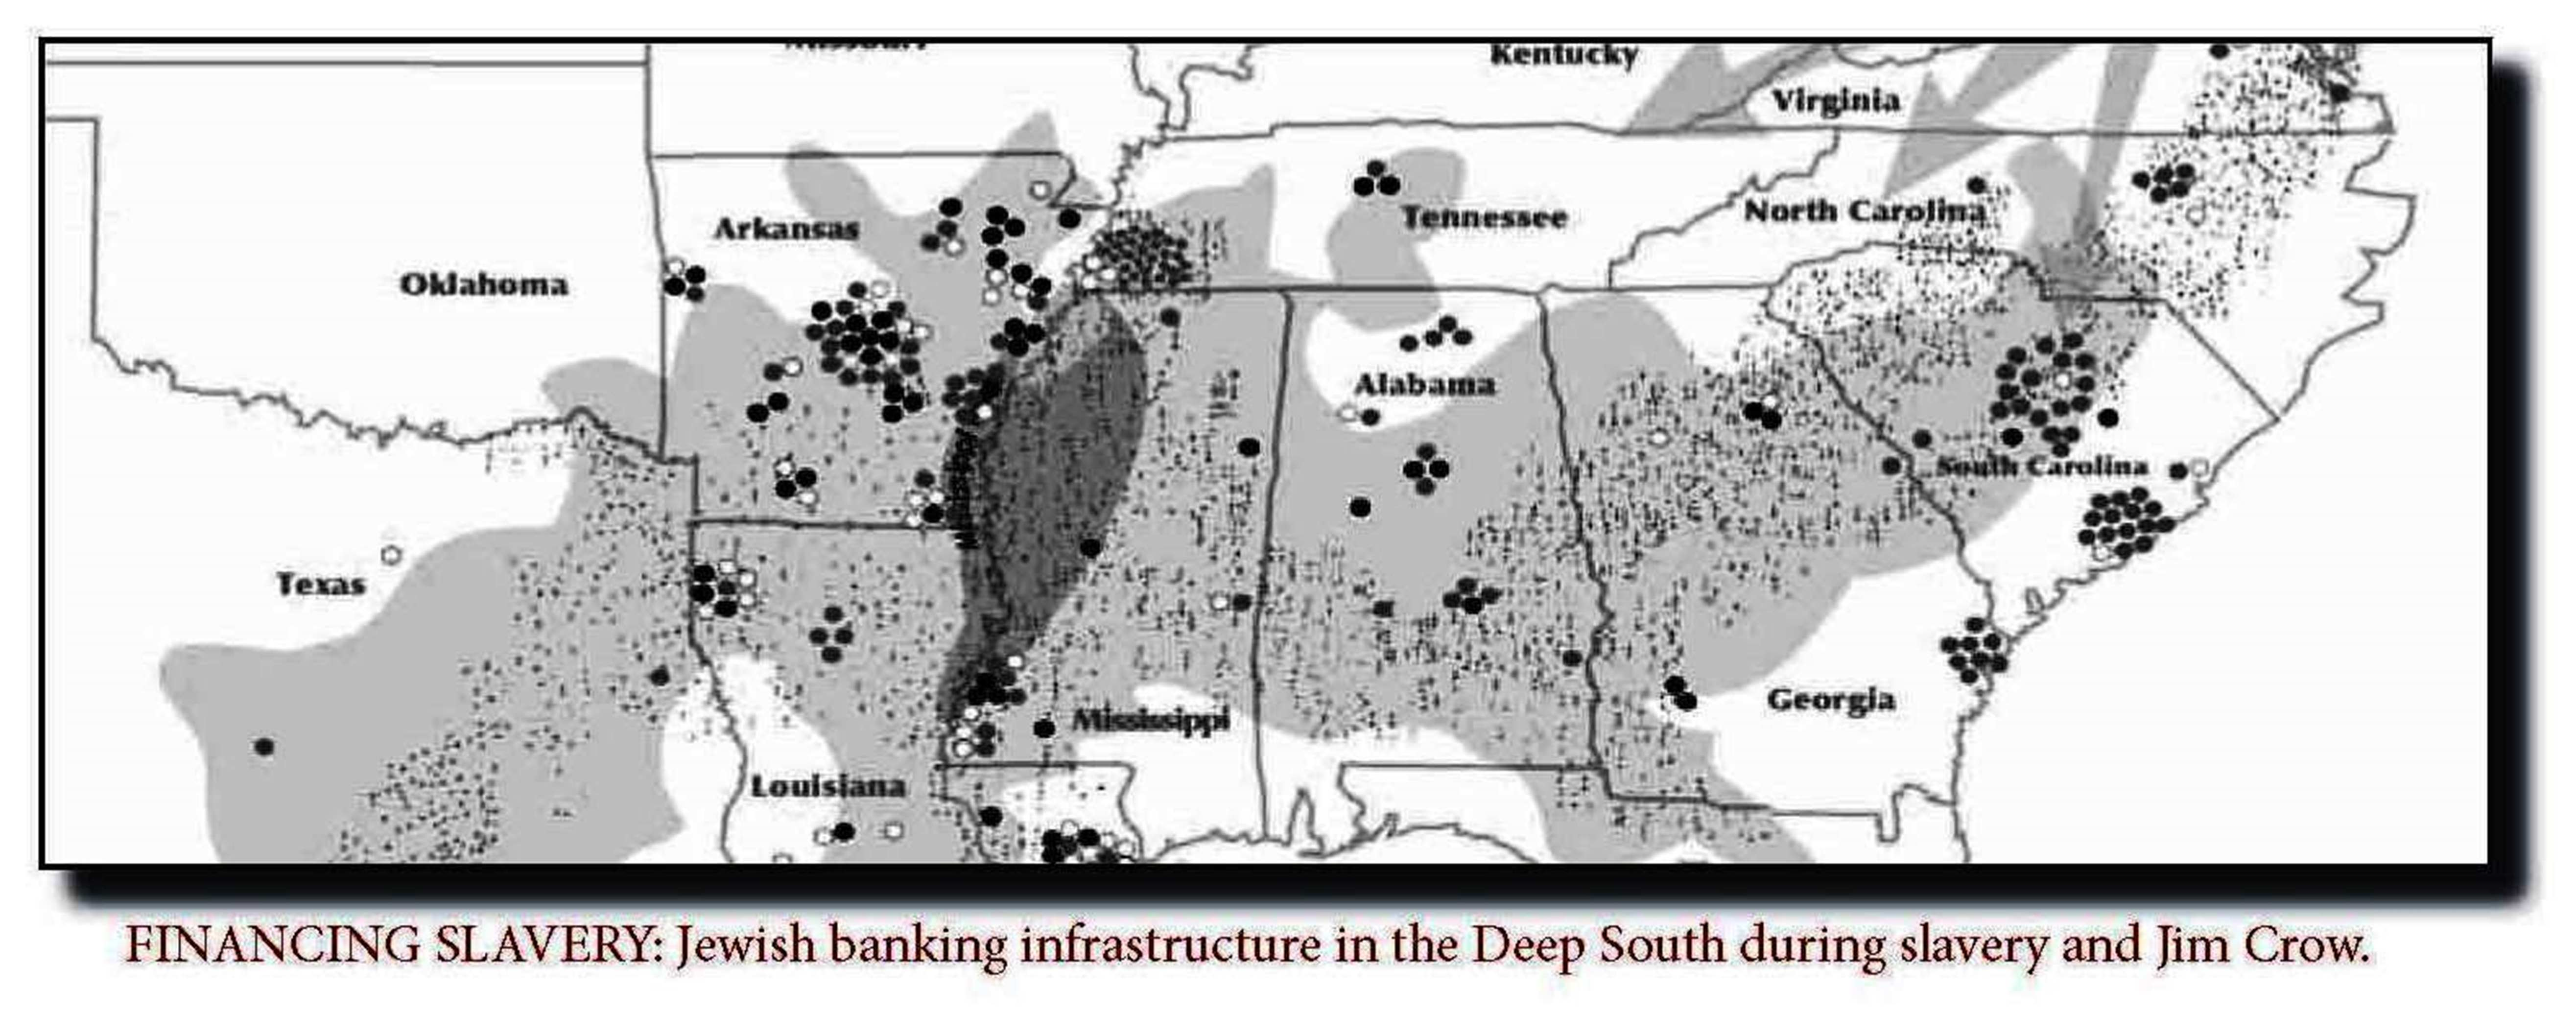 Financing Slavery- Jewish Banking infrastructure during slavery and Jim Crow